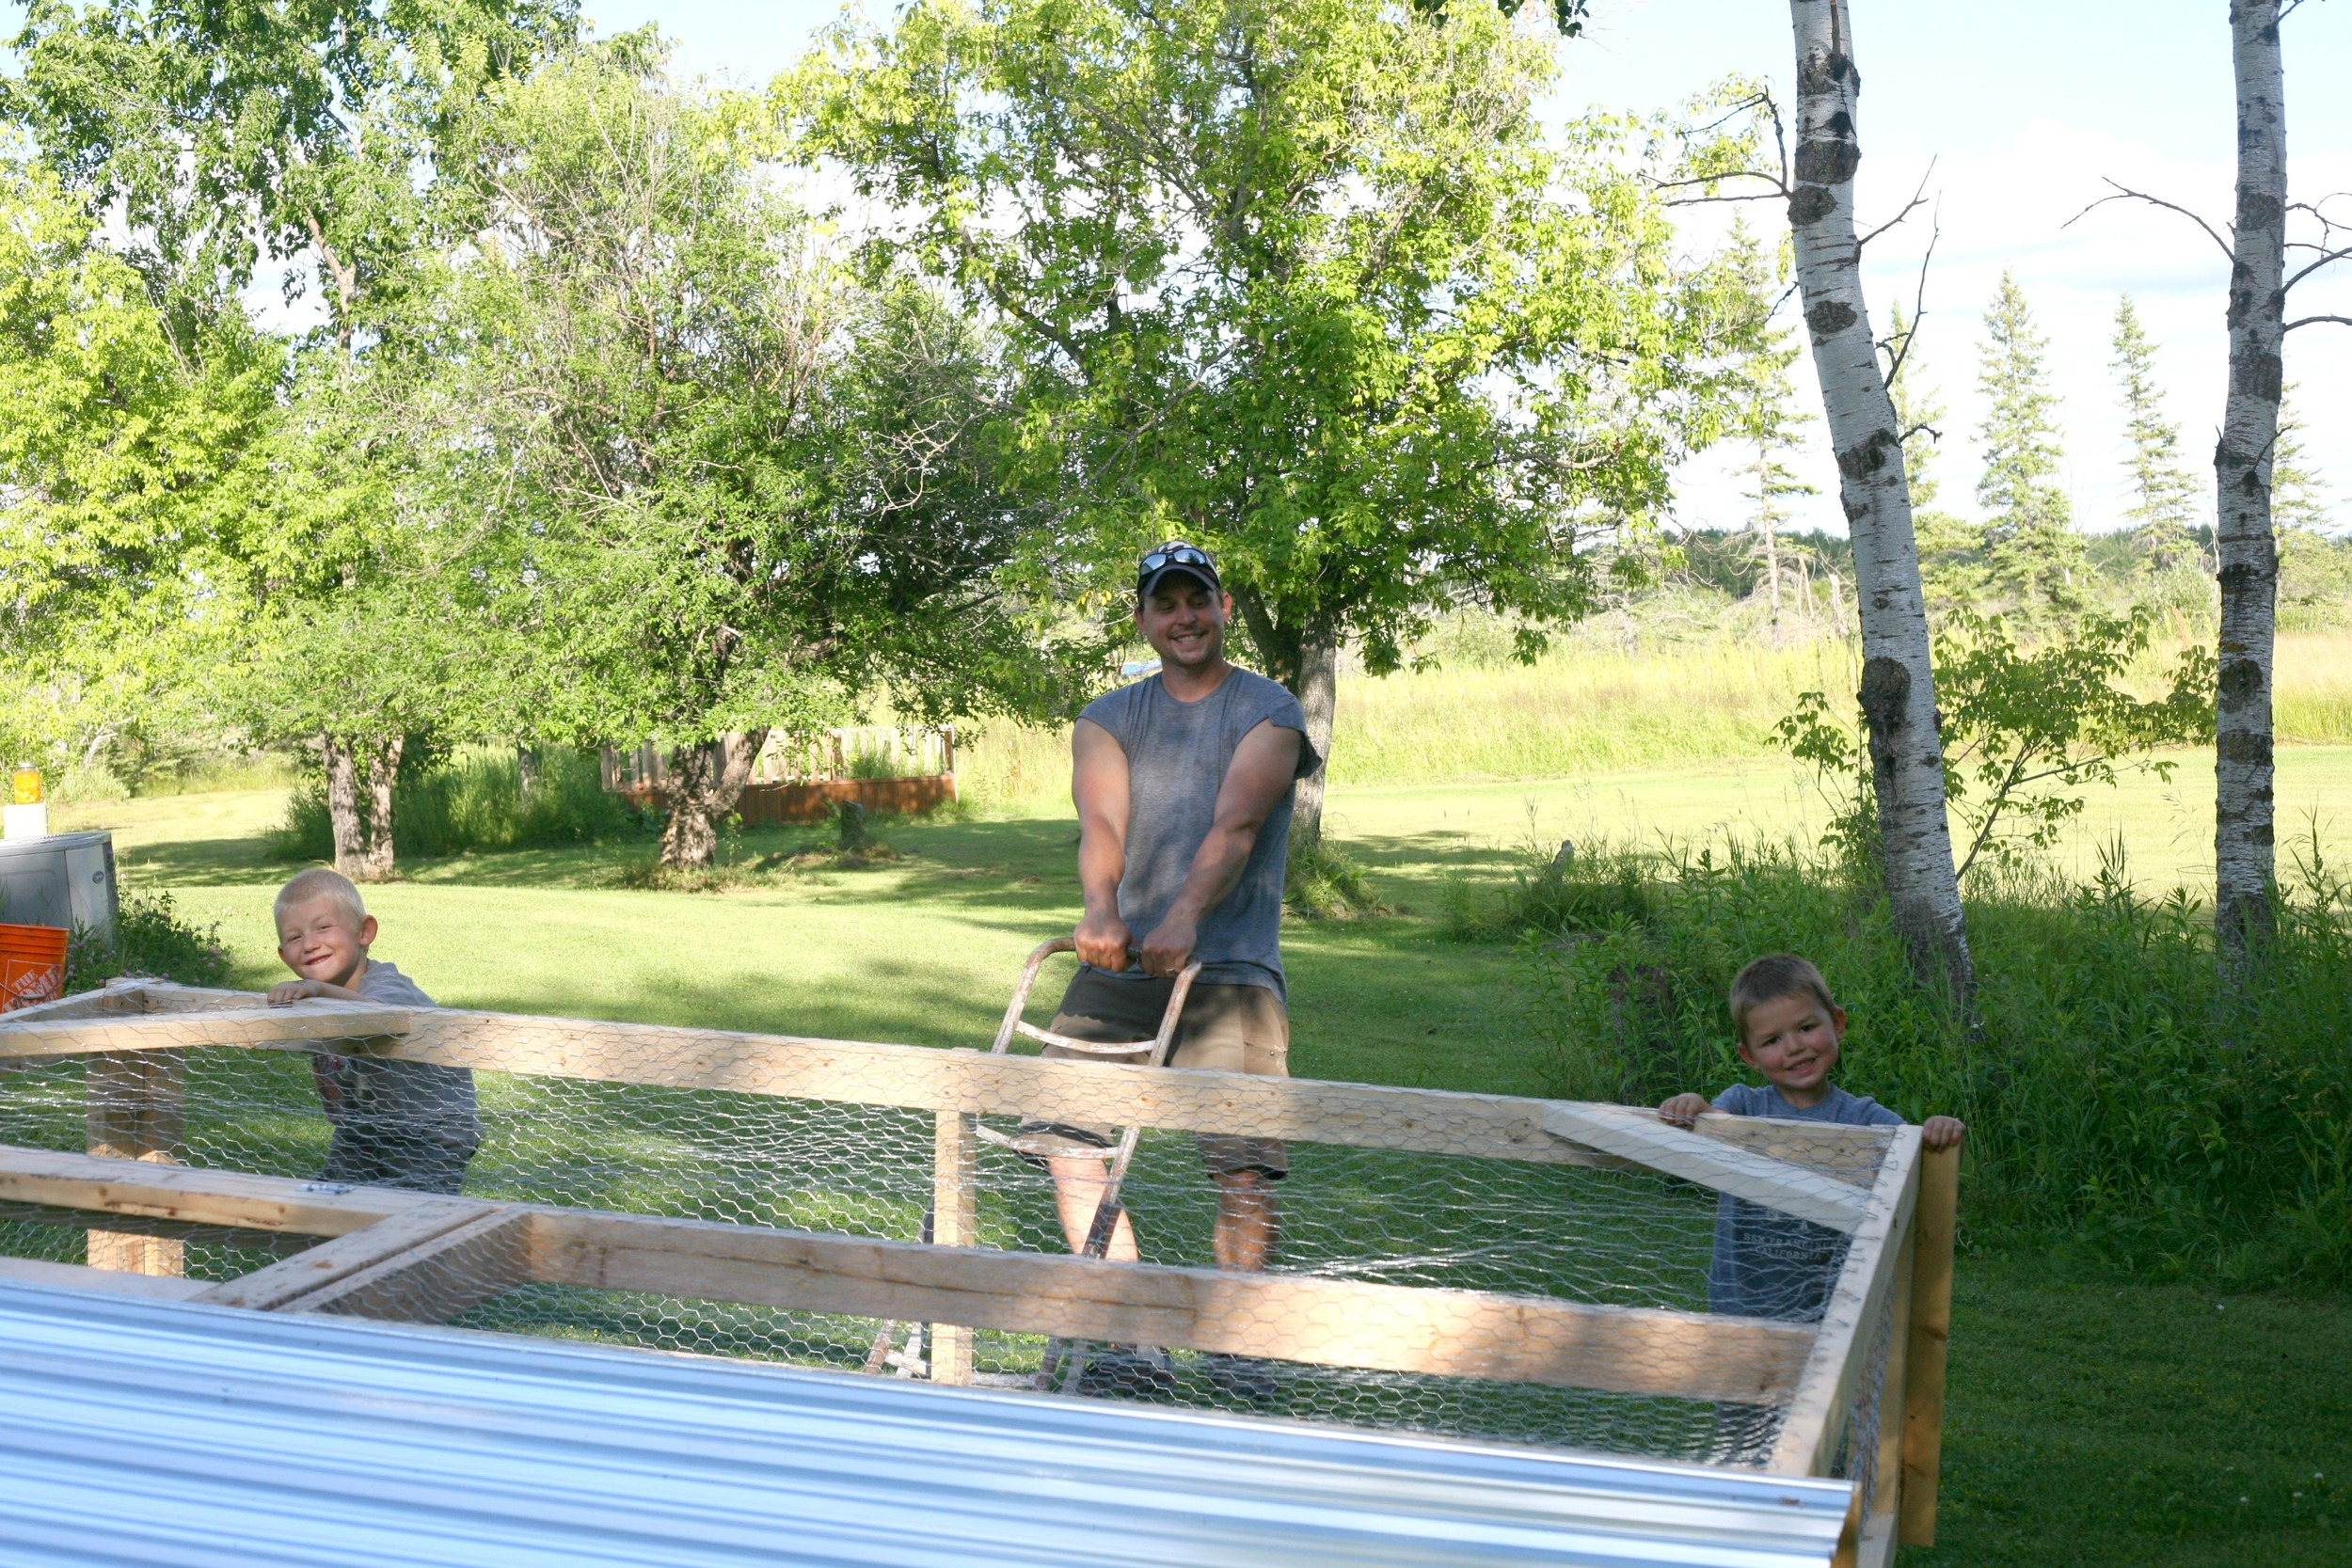 Side note - the Chicken Tractor I built was nowhere near as complicated as that cloning chamber I made 4 years ago: